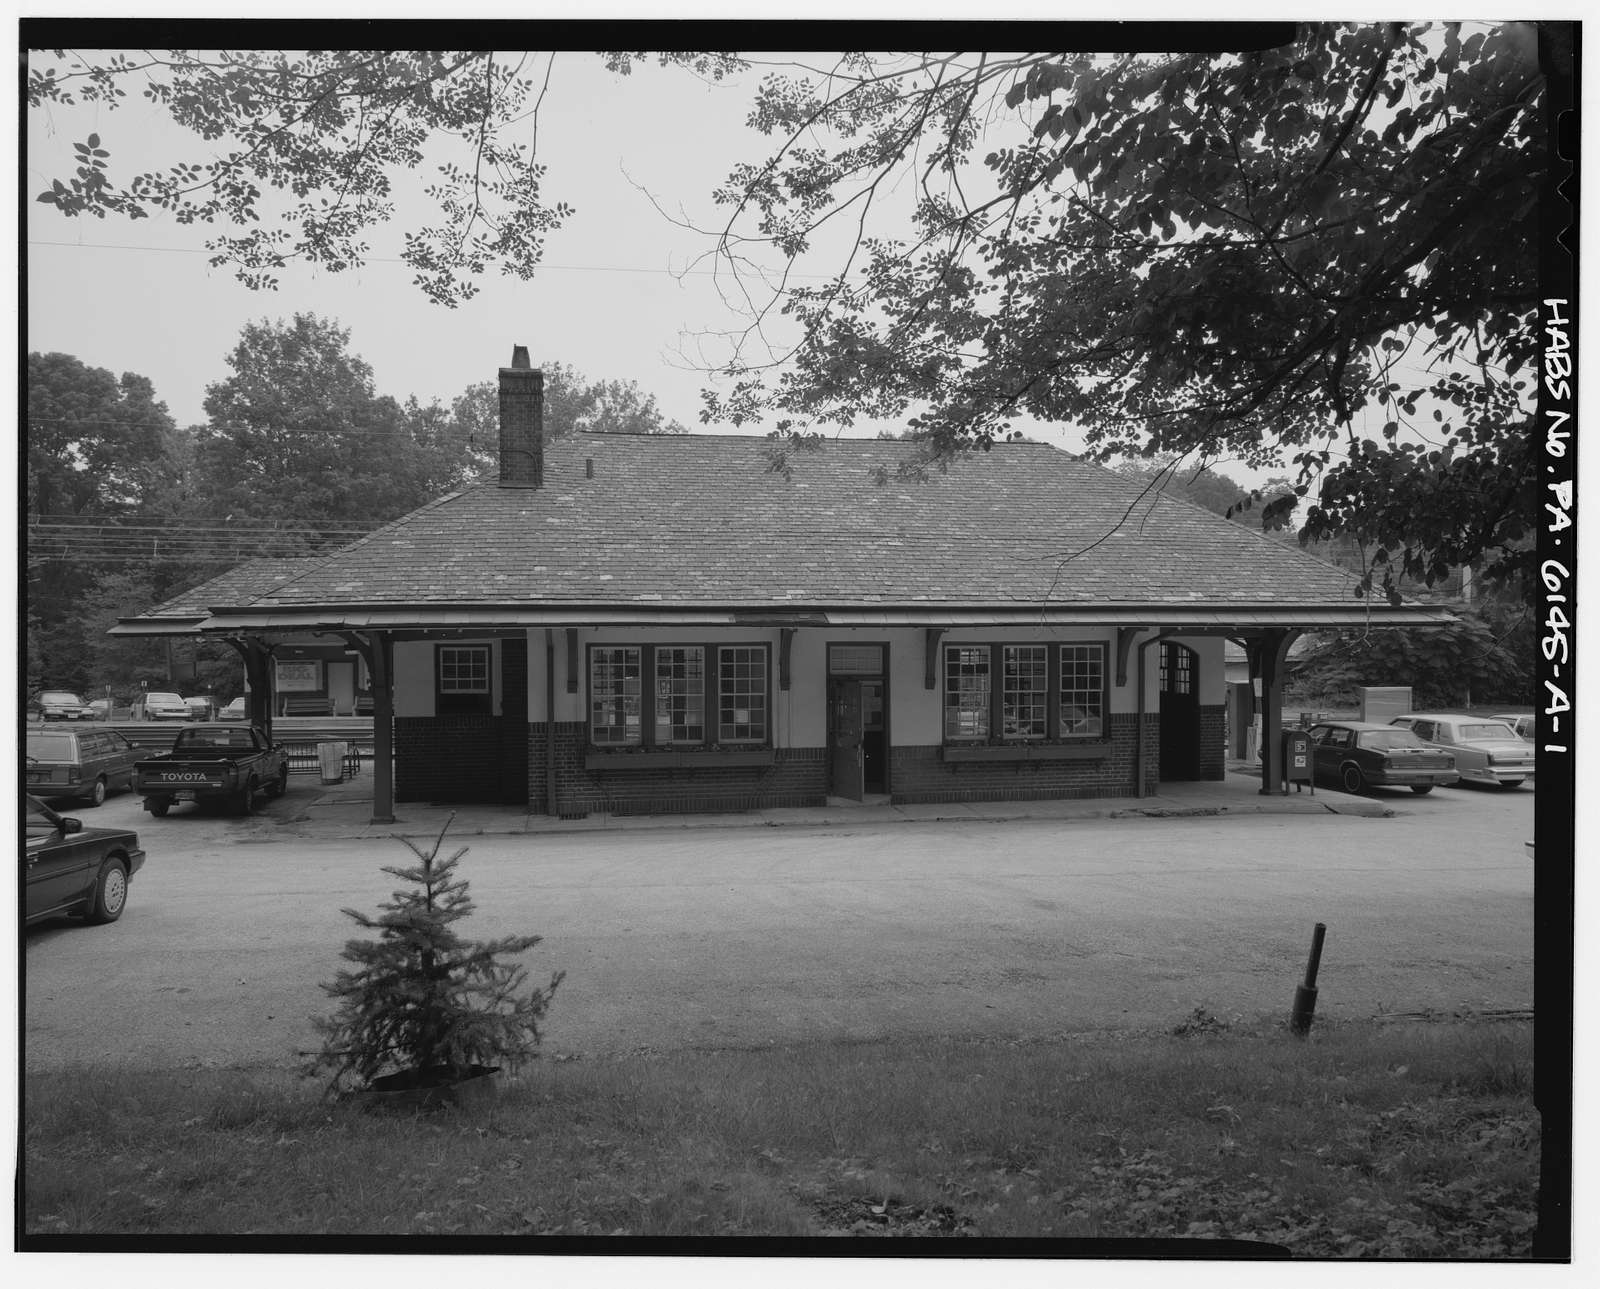 Merion Railroad Station, Main Station, Civic Circle, Merion Park, Montgomery County, PA